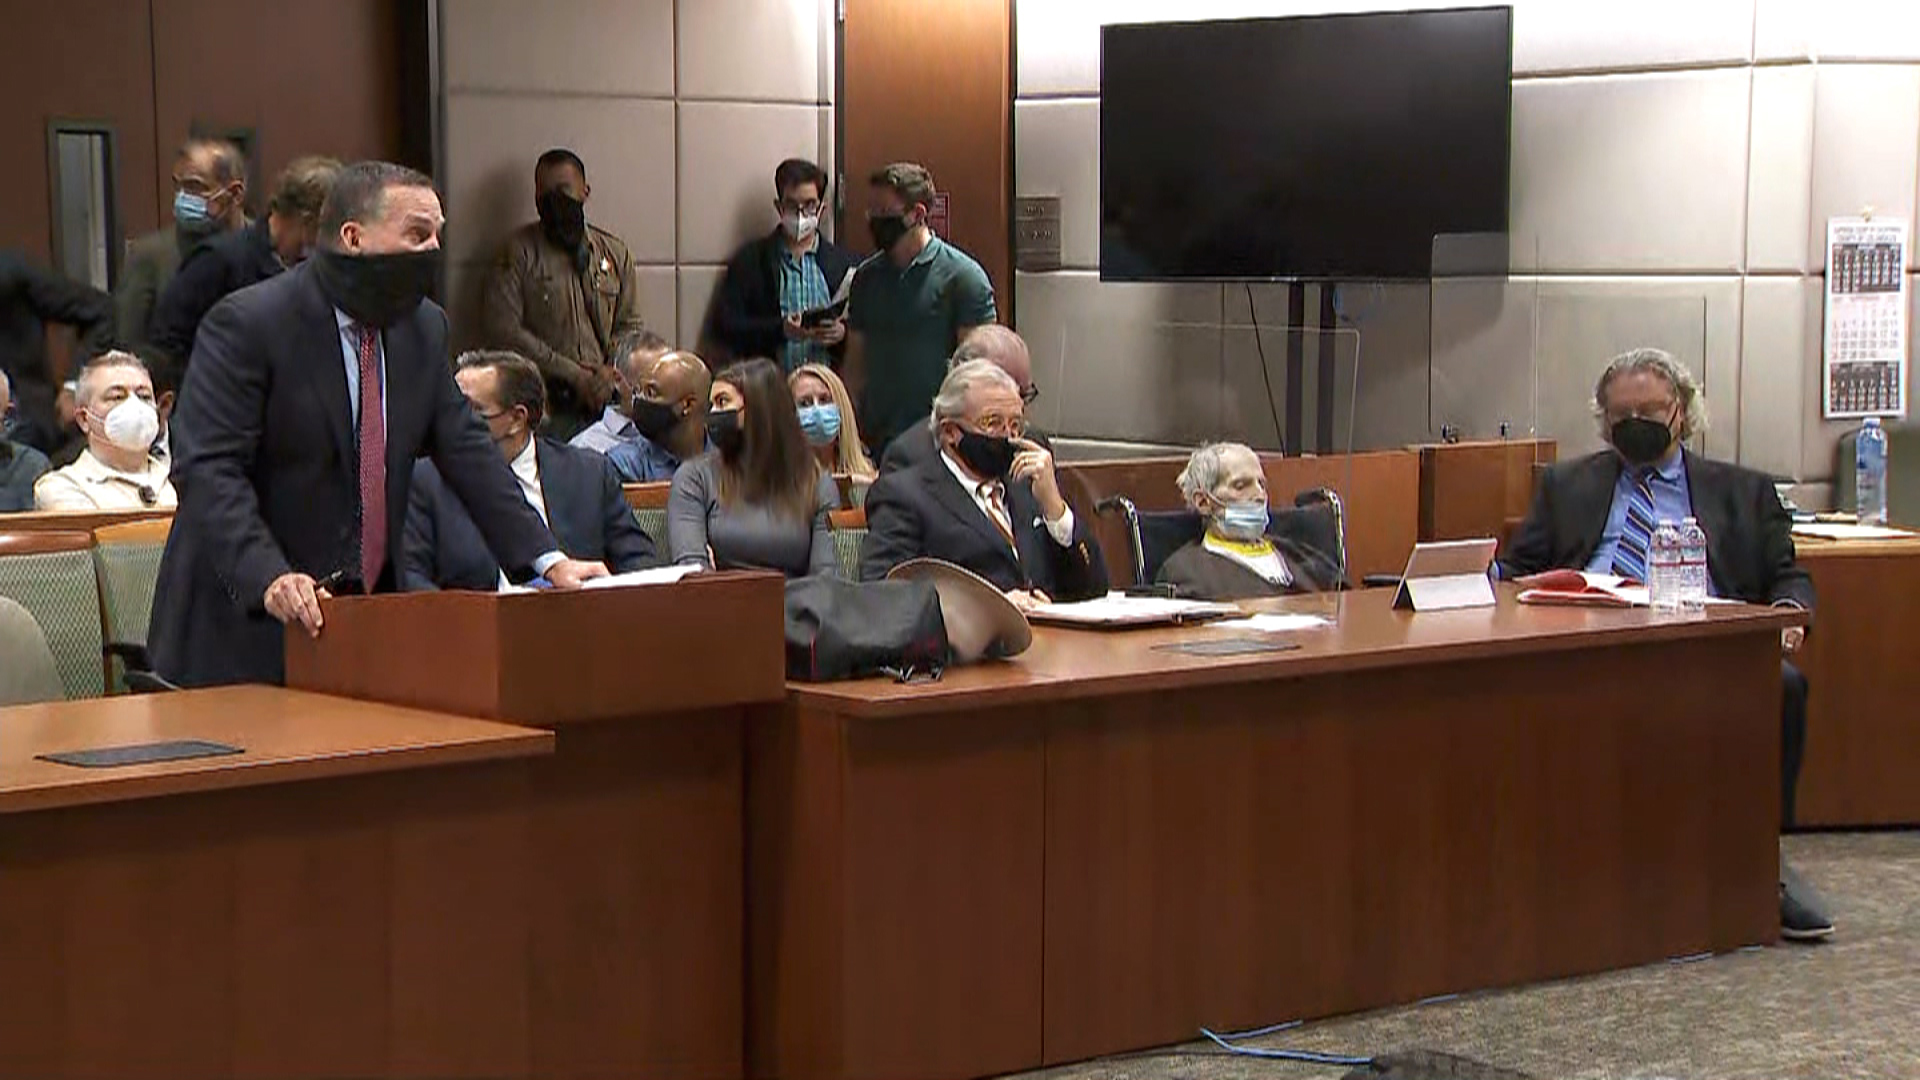 Robert Durst appears in court for his sentencing on Thursday, October 14.